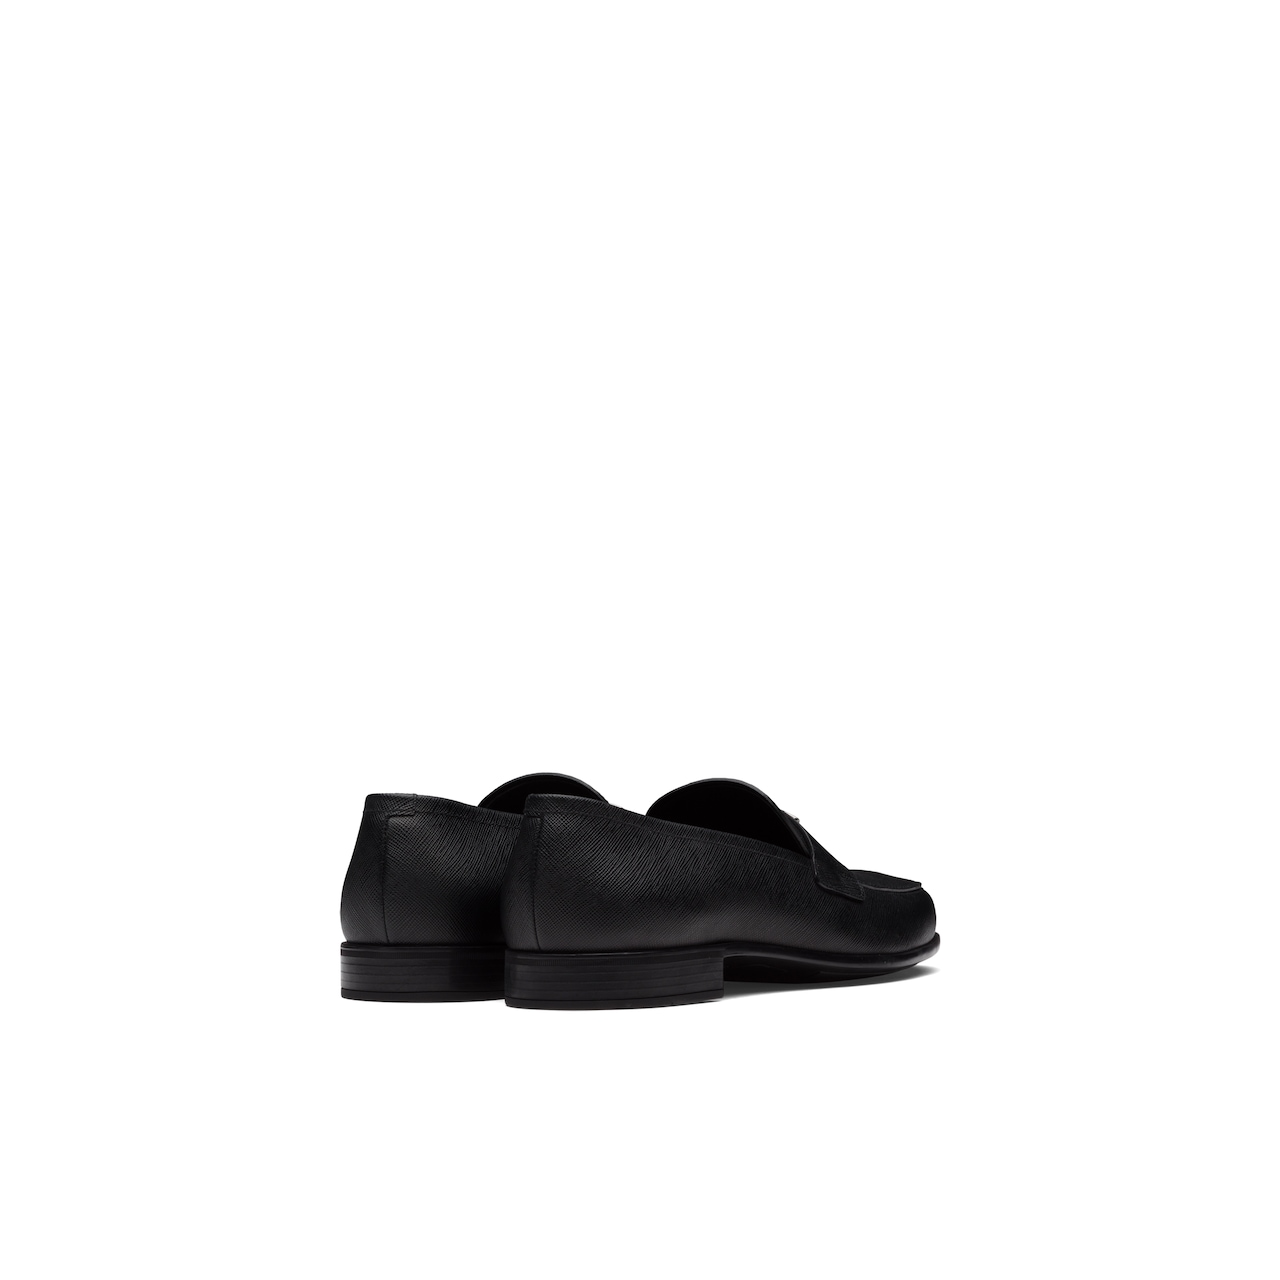 Prada Saffiano leather loafers 5